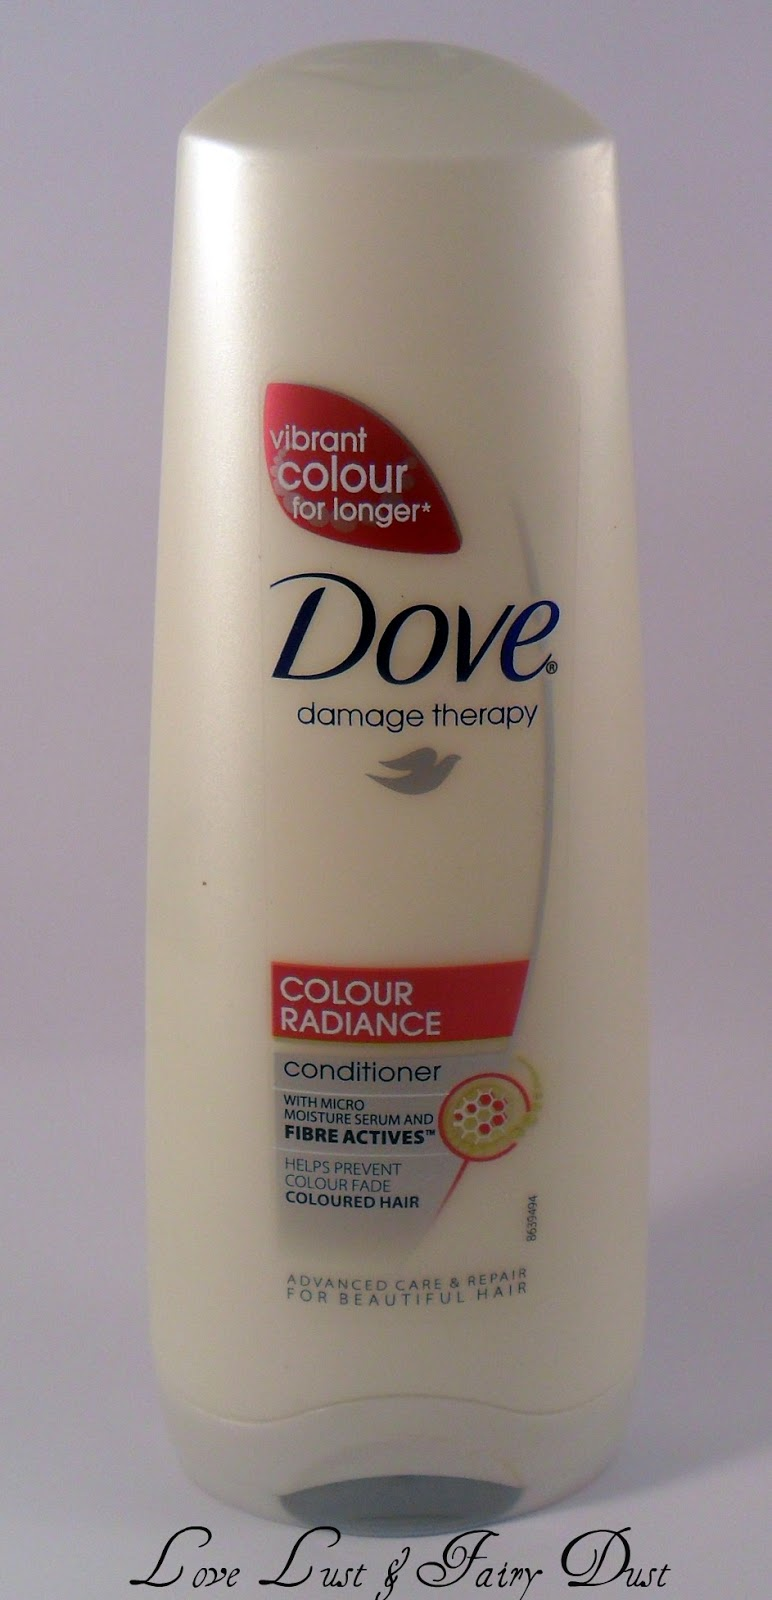 Dove Damage Therapy Colour Radiance Hair Care Range